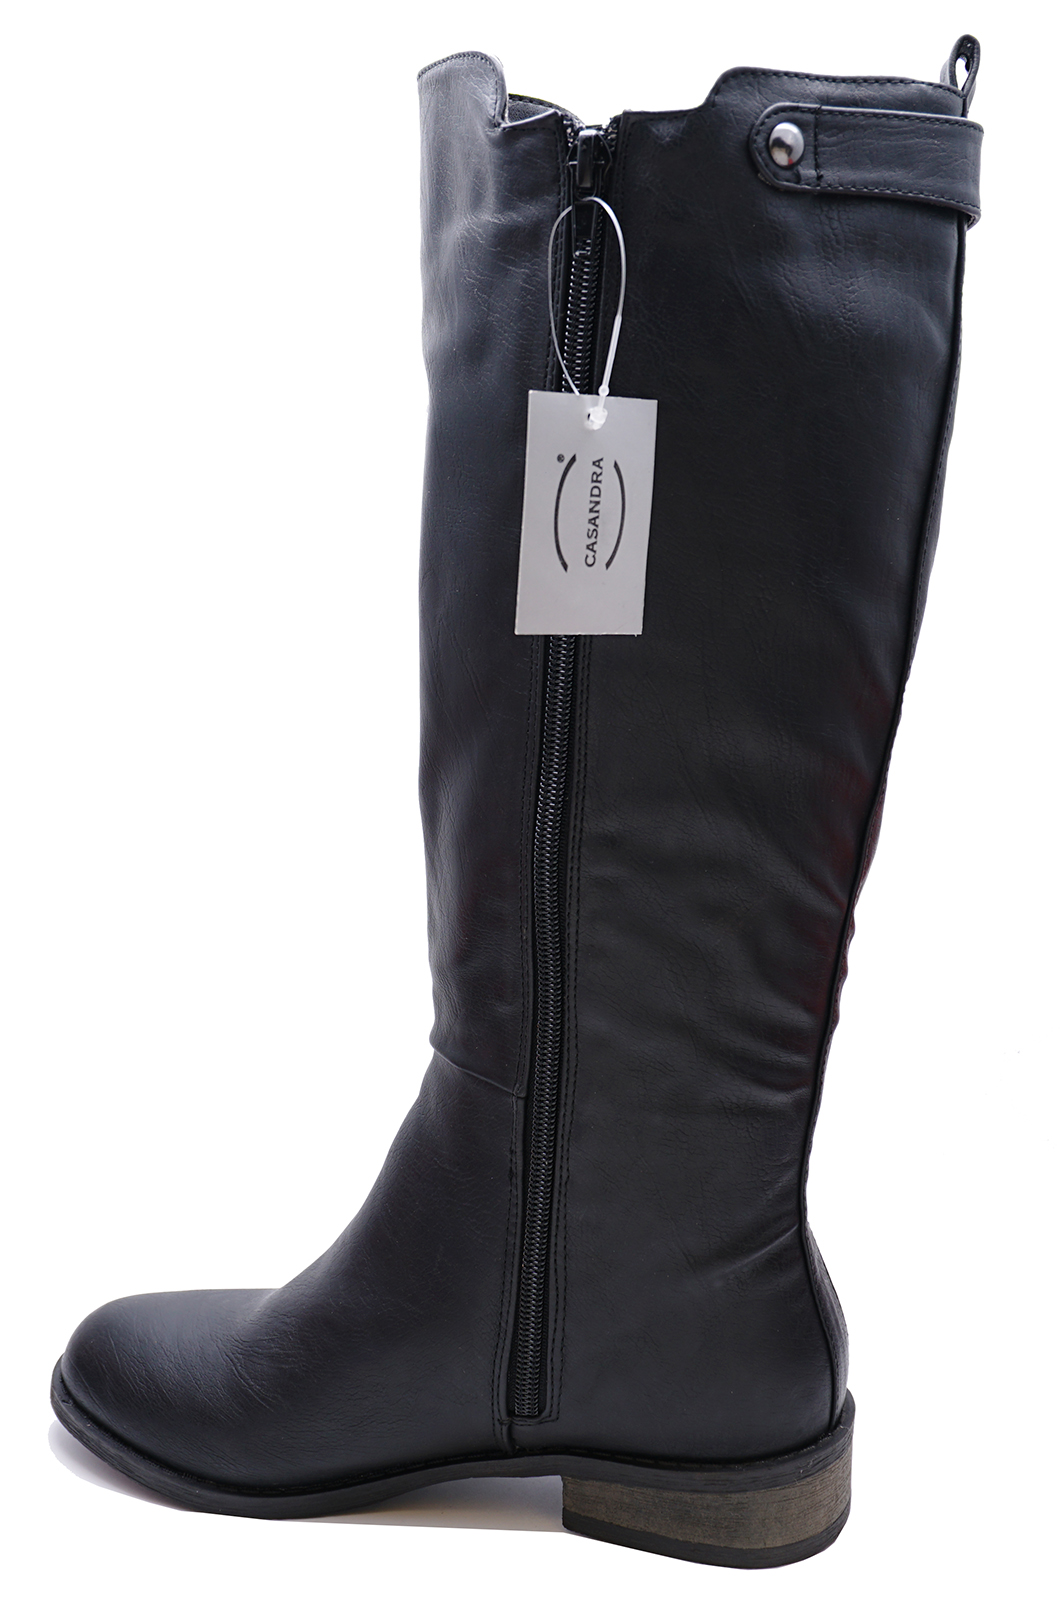 LADIES-BLACK-FLAT-STRETCH-ZIP-UP-KNEE-HIGH-TALL-RIDING-BOOTS-COMFY-SHOES-3-8 thumbnail 6